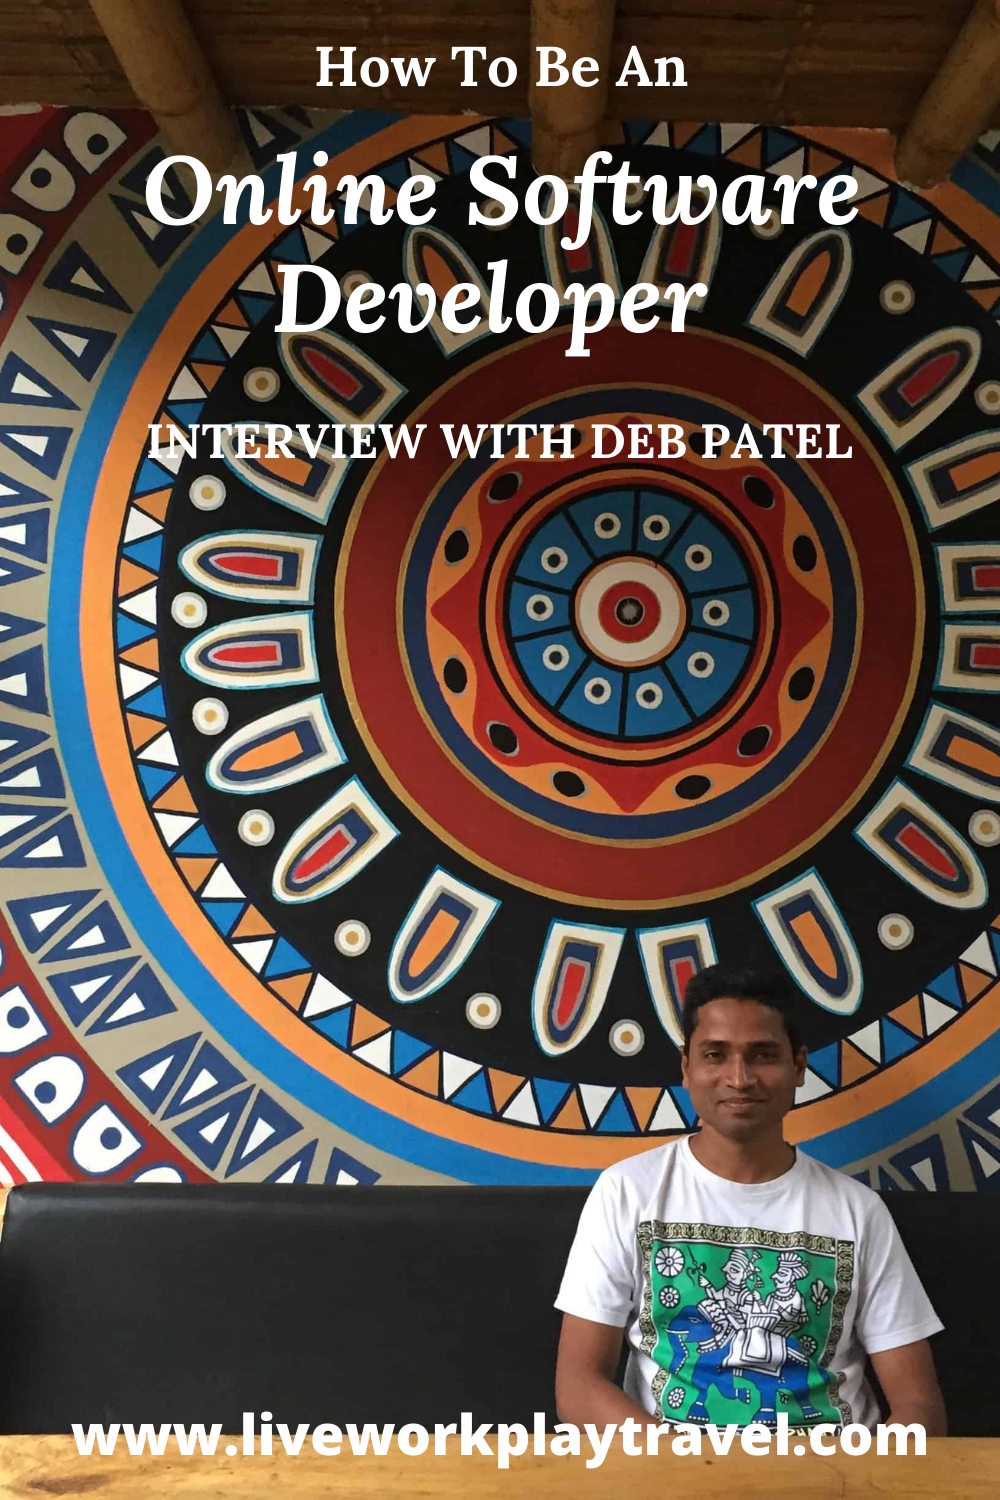 Deb Patel Sitting In A Coffee Shop Developing Software